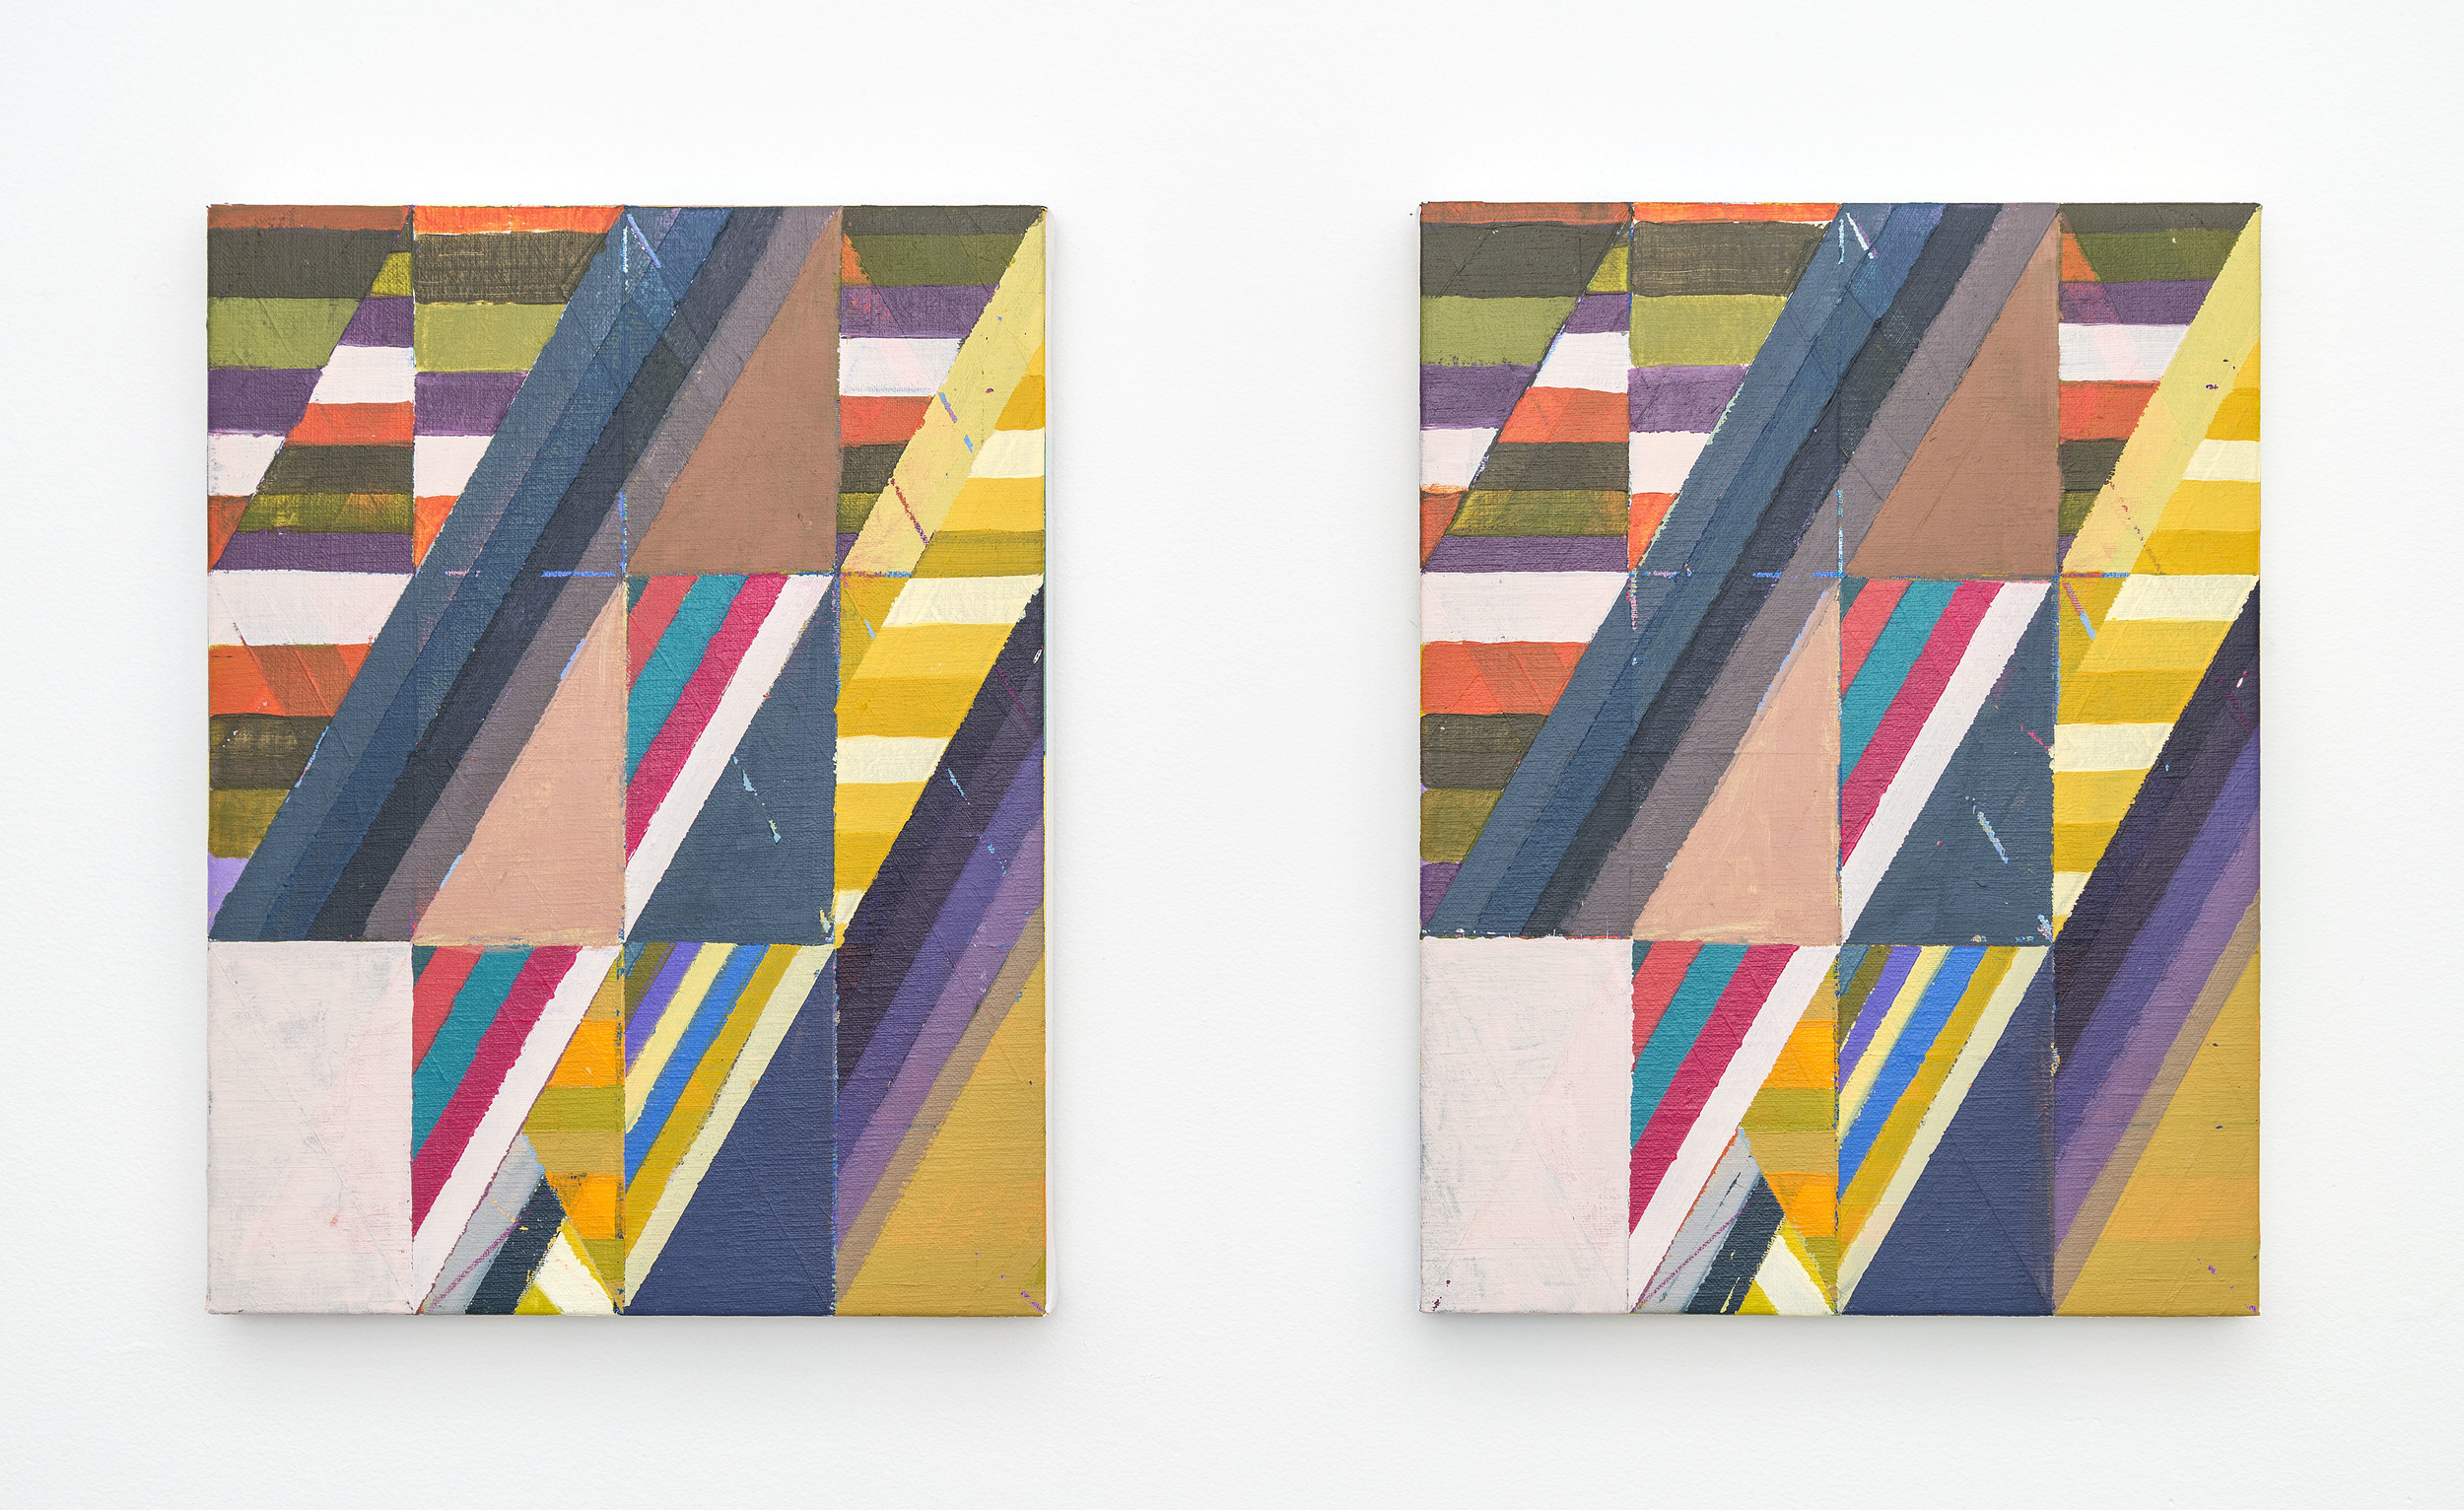 Line of Thinking (Diptych),2015,Acrylic + colored pencil on linen over panels,12 x 9 inches each